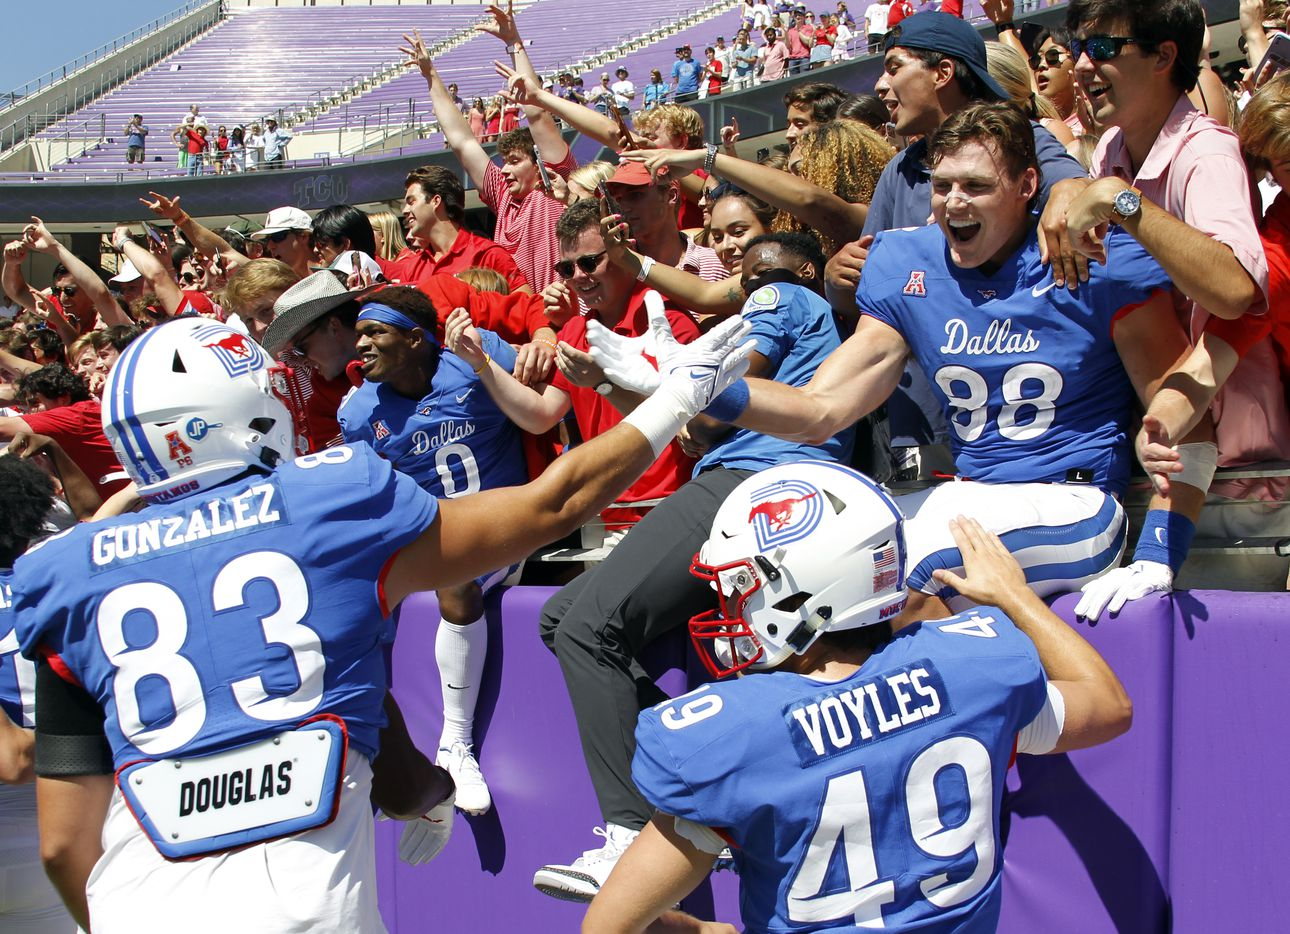 SMU tight end Grant Calcaterra (88), upper right, was all smiles as he shares a congratulatory handshake with teammate Simon Gonzalez (83) as players and fans celebrated the Mustangs' 42-34 victory over TCU. The two teams played their NCAA football game at Amon G. Carter Stadium on the campus of TCU in Fort Worth on September 25, 2021. (Steve Hamm/ Special Contributor)